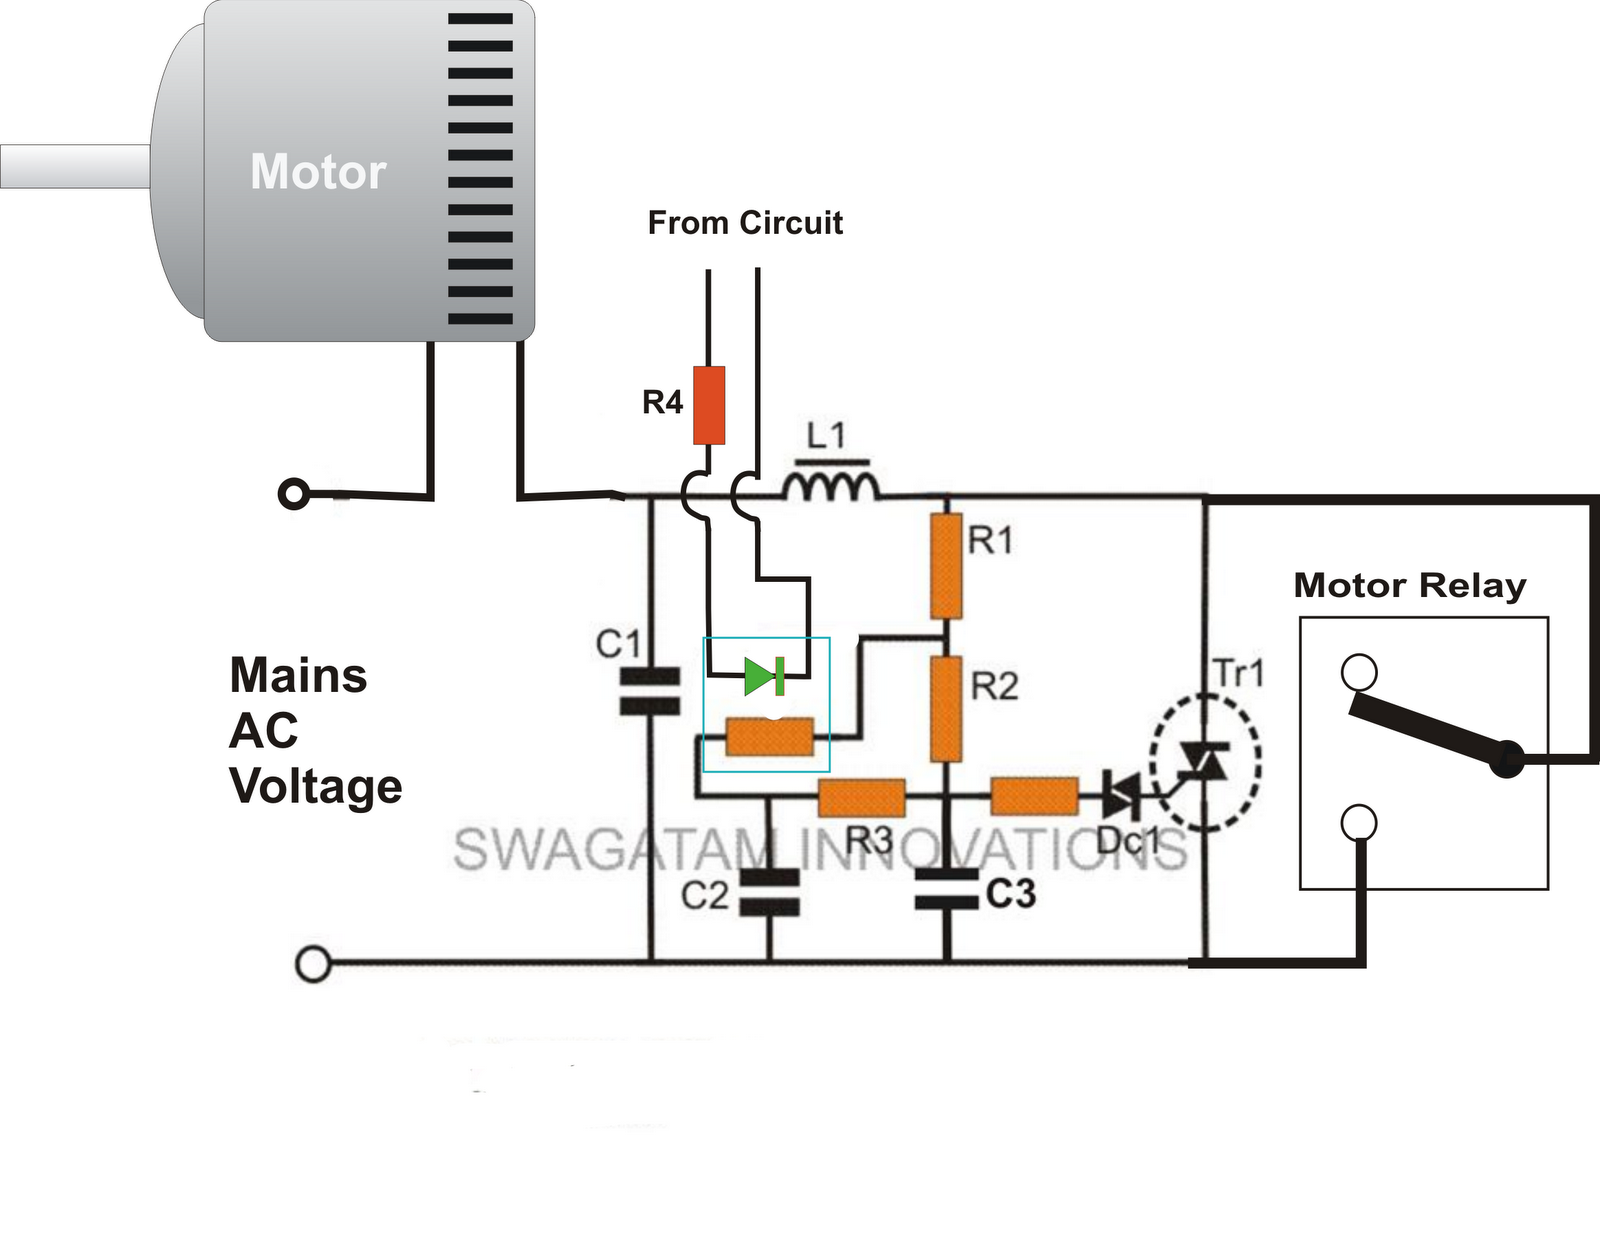 Wiring Diagram Of 3 Phase Motor : Phase motor wiring diagrams control